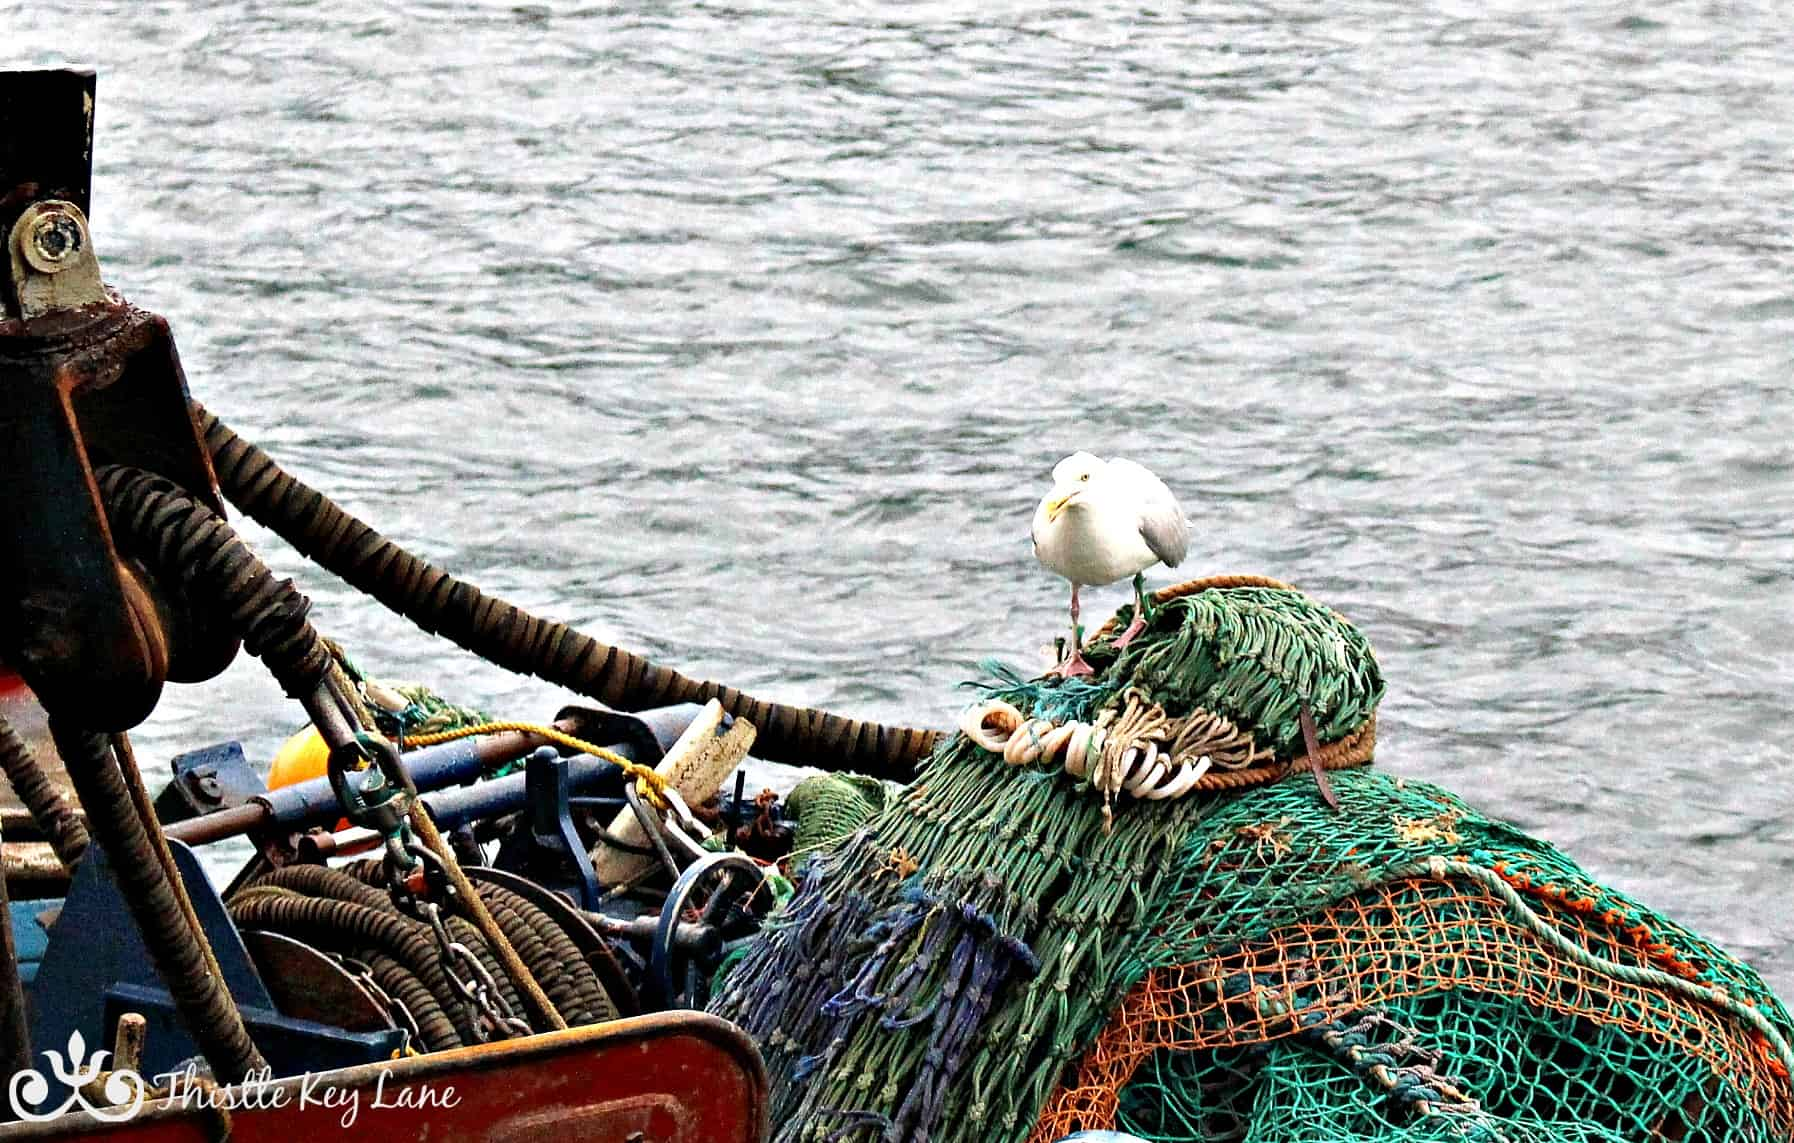 Early breakfast of leftovers in the fishing nets.